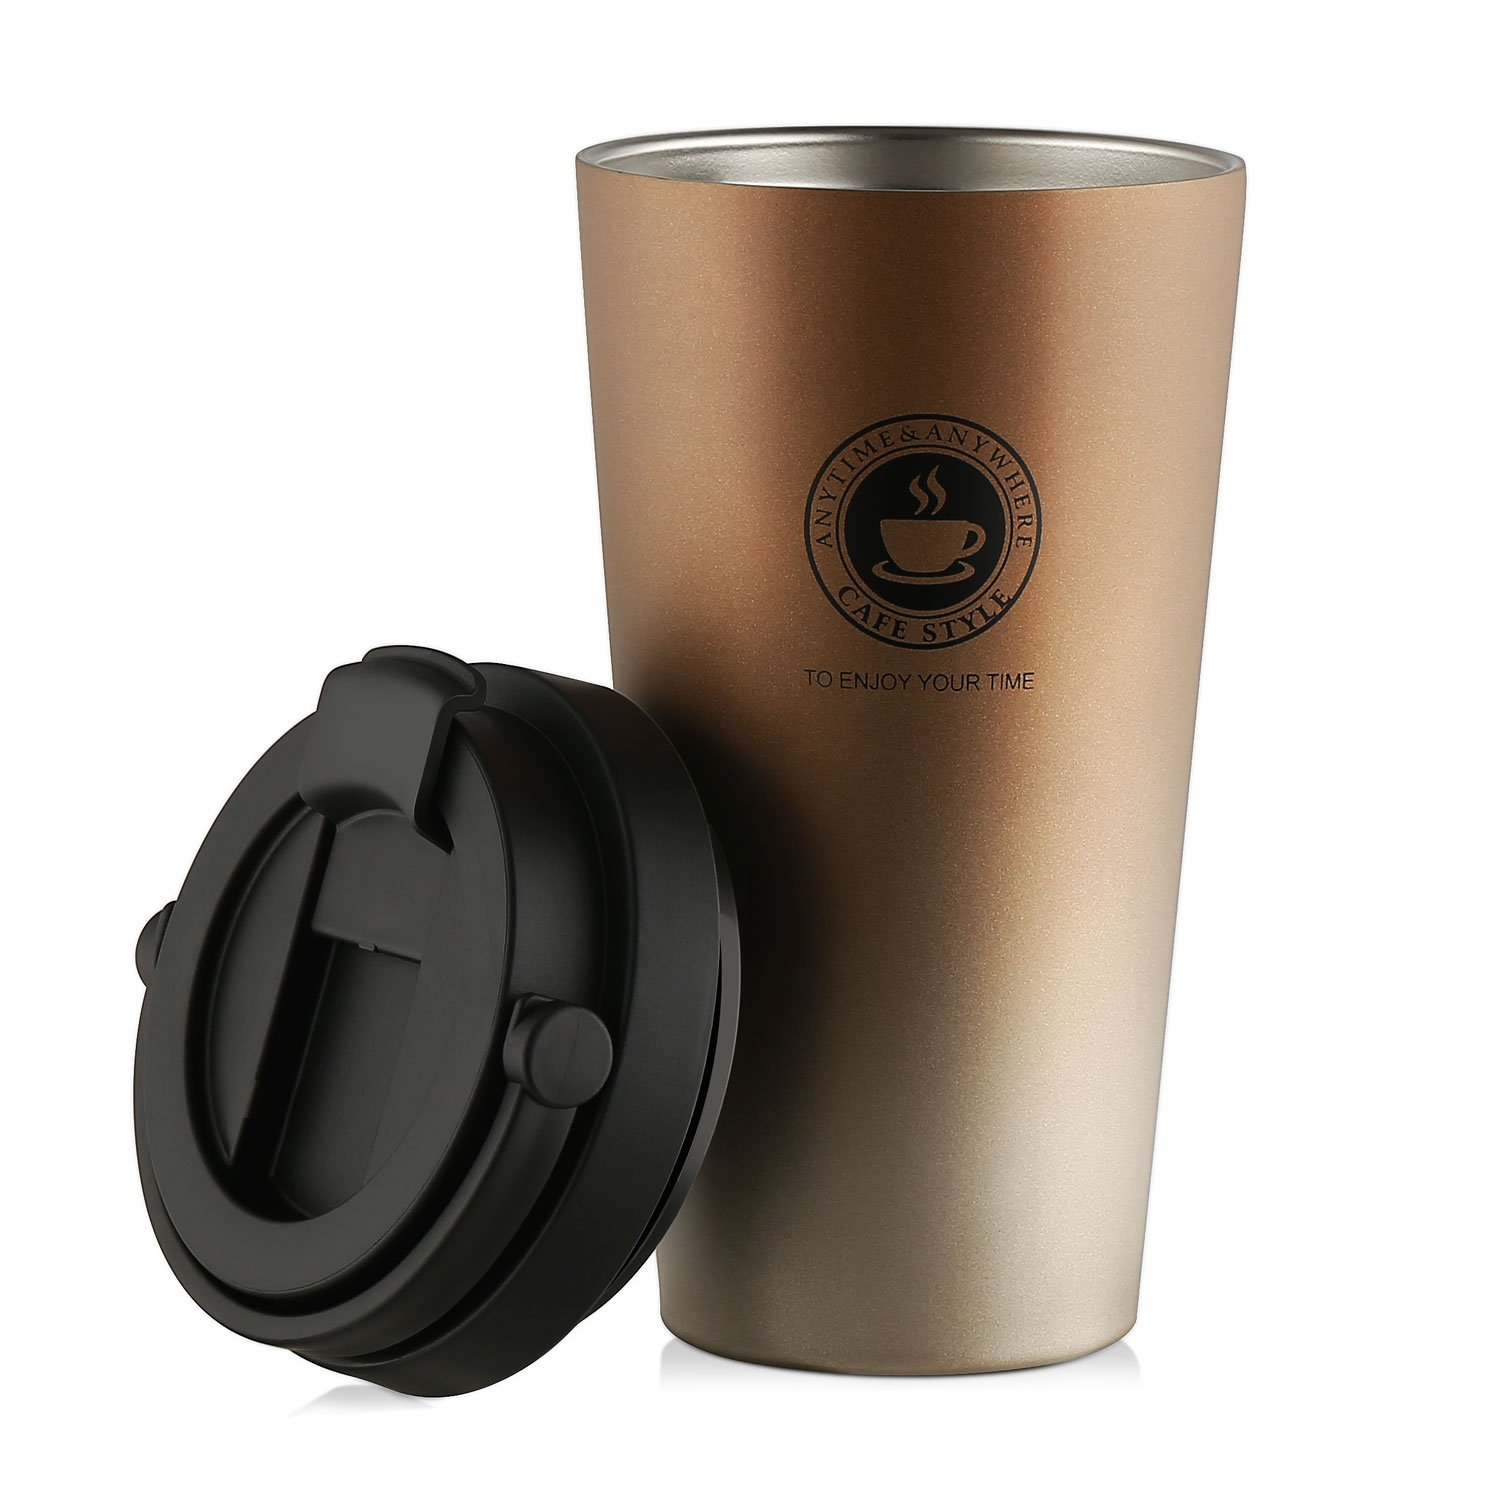 Home / portable Stainless Steel Coffee Mug Insulation / cold Beer Cup acuum Insulated Double-Walled 18/8 Stainless Steel Hydro Travel Mug Coffee color 17OZ (500ml) by SEPT MIRACLE (Image #1)